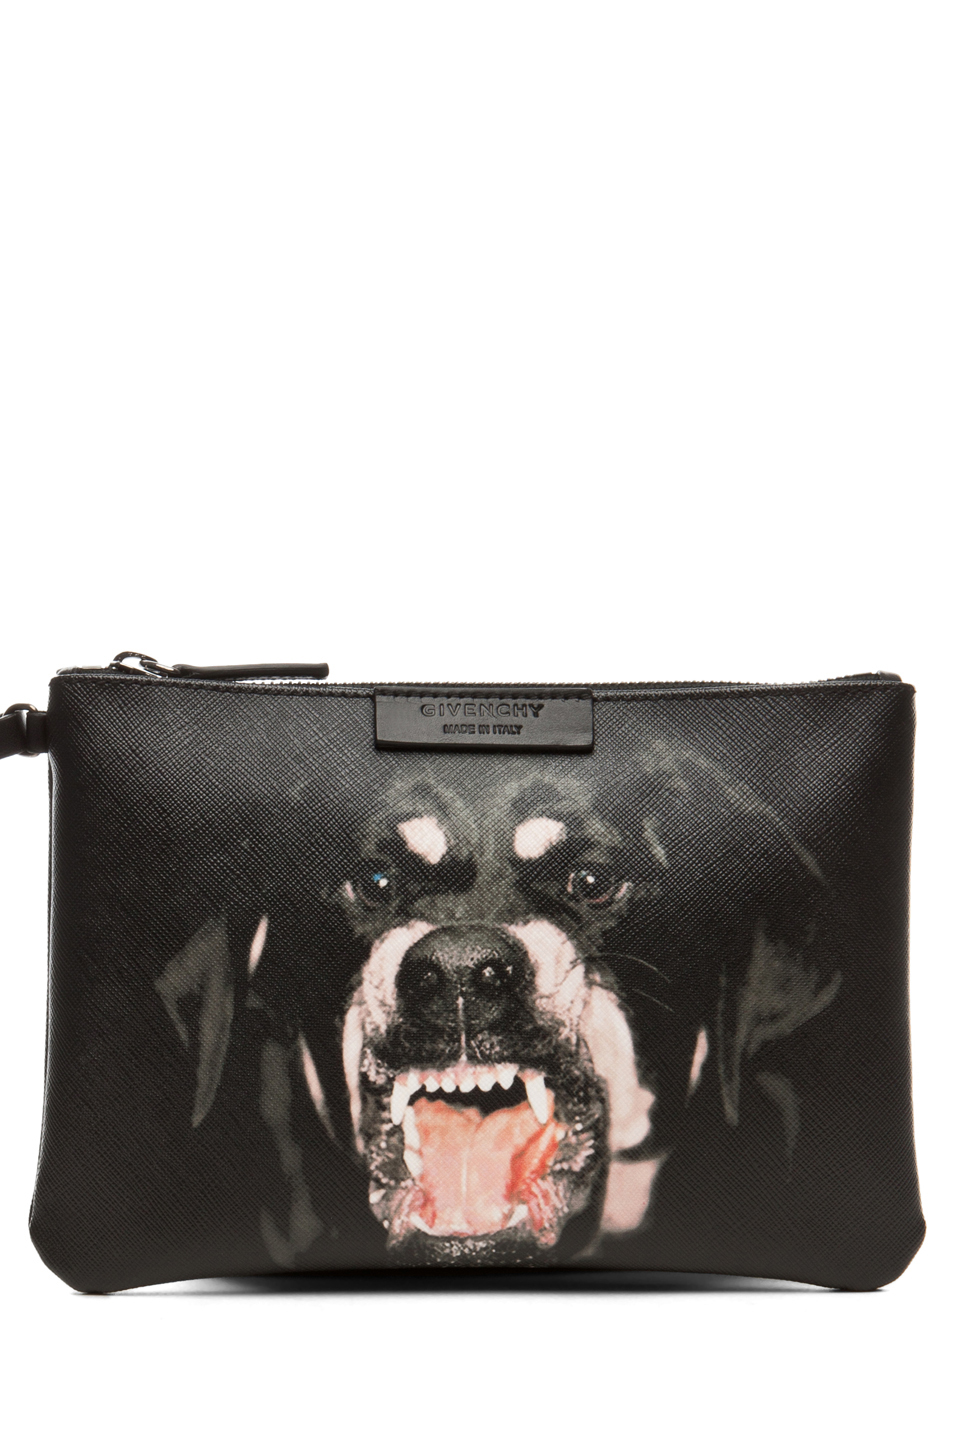 GIVENCHY | Rottweiler Antigona Tote in Black